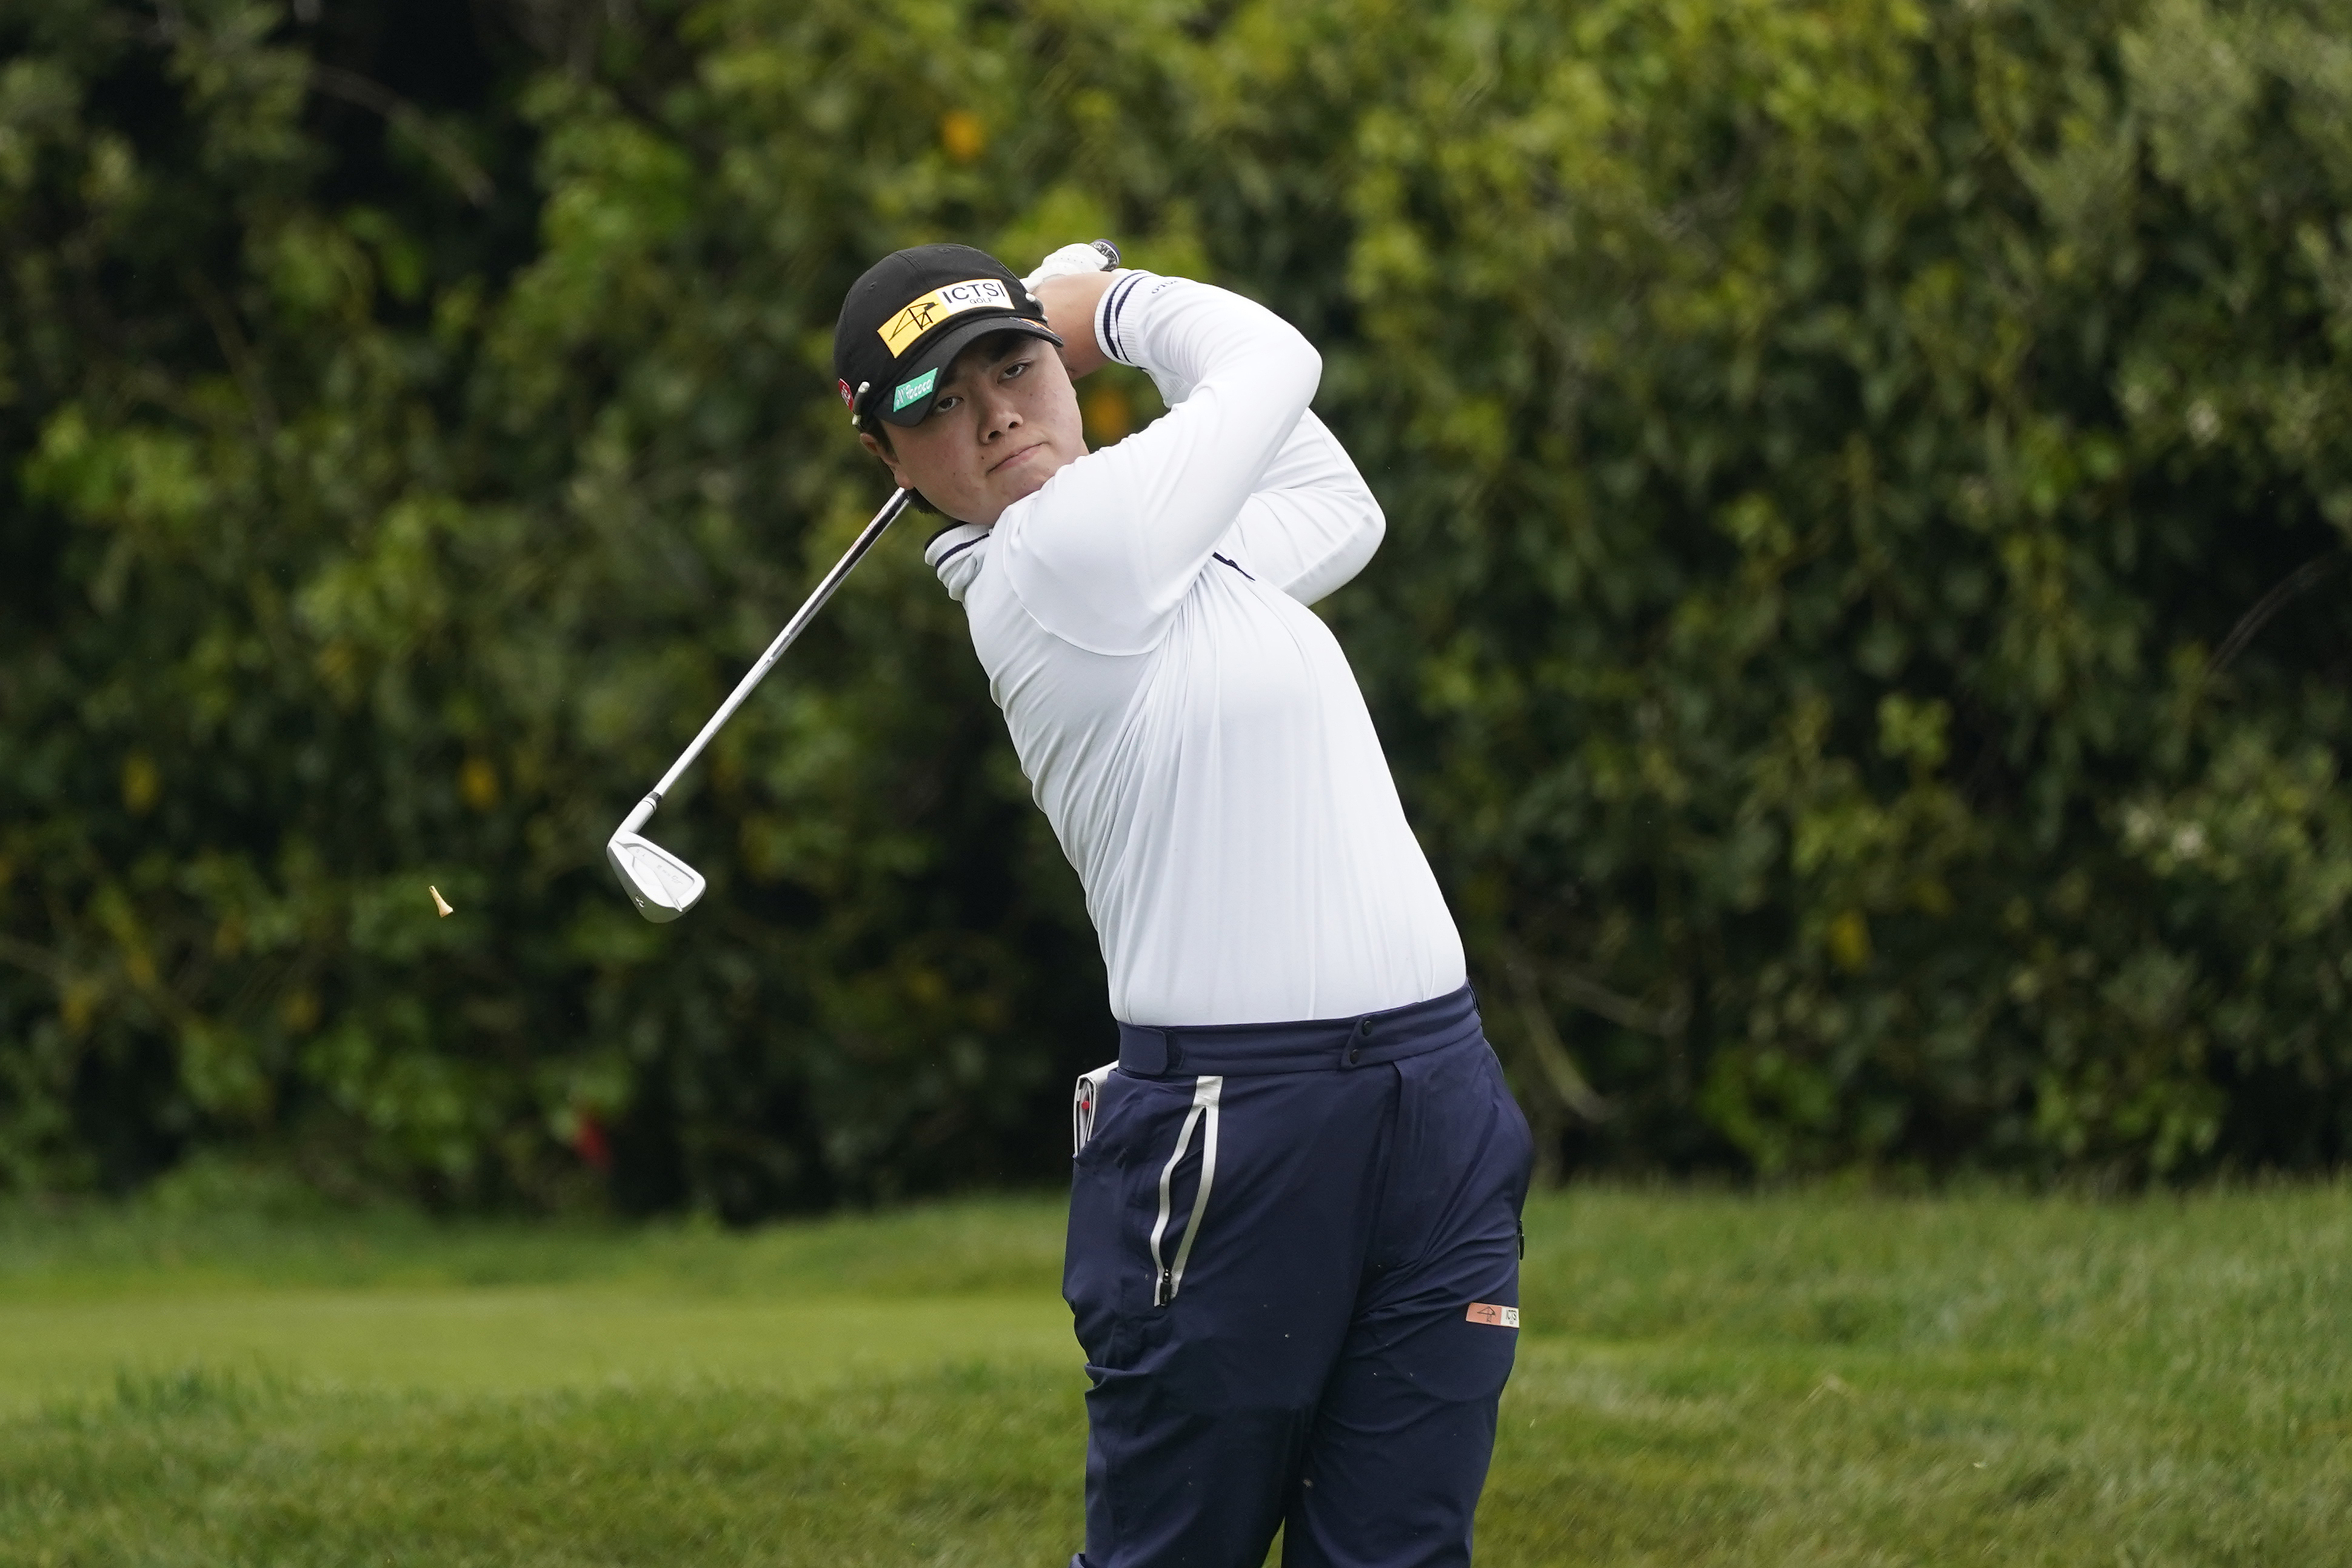 U S Women S Open 2021 Yuka Saso Leads At 6 Under After 2nd Round 67 Bleacher Report Latest News Videos And Highlights